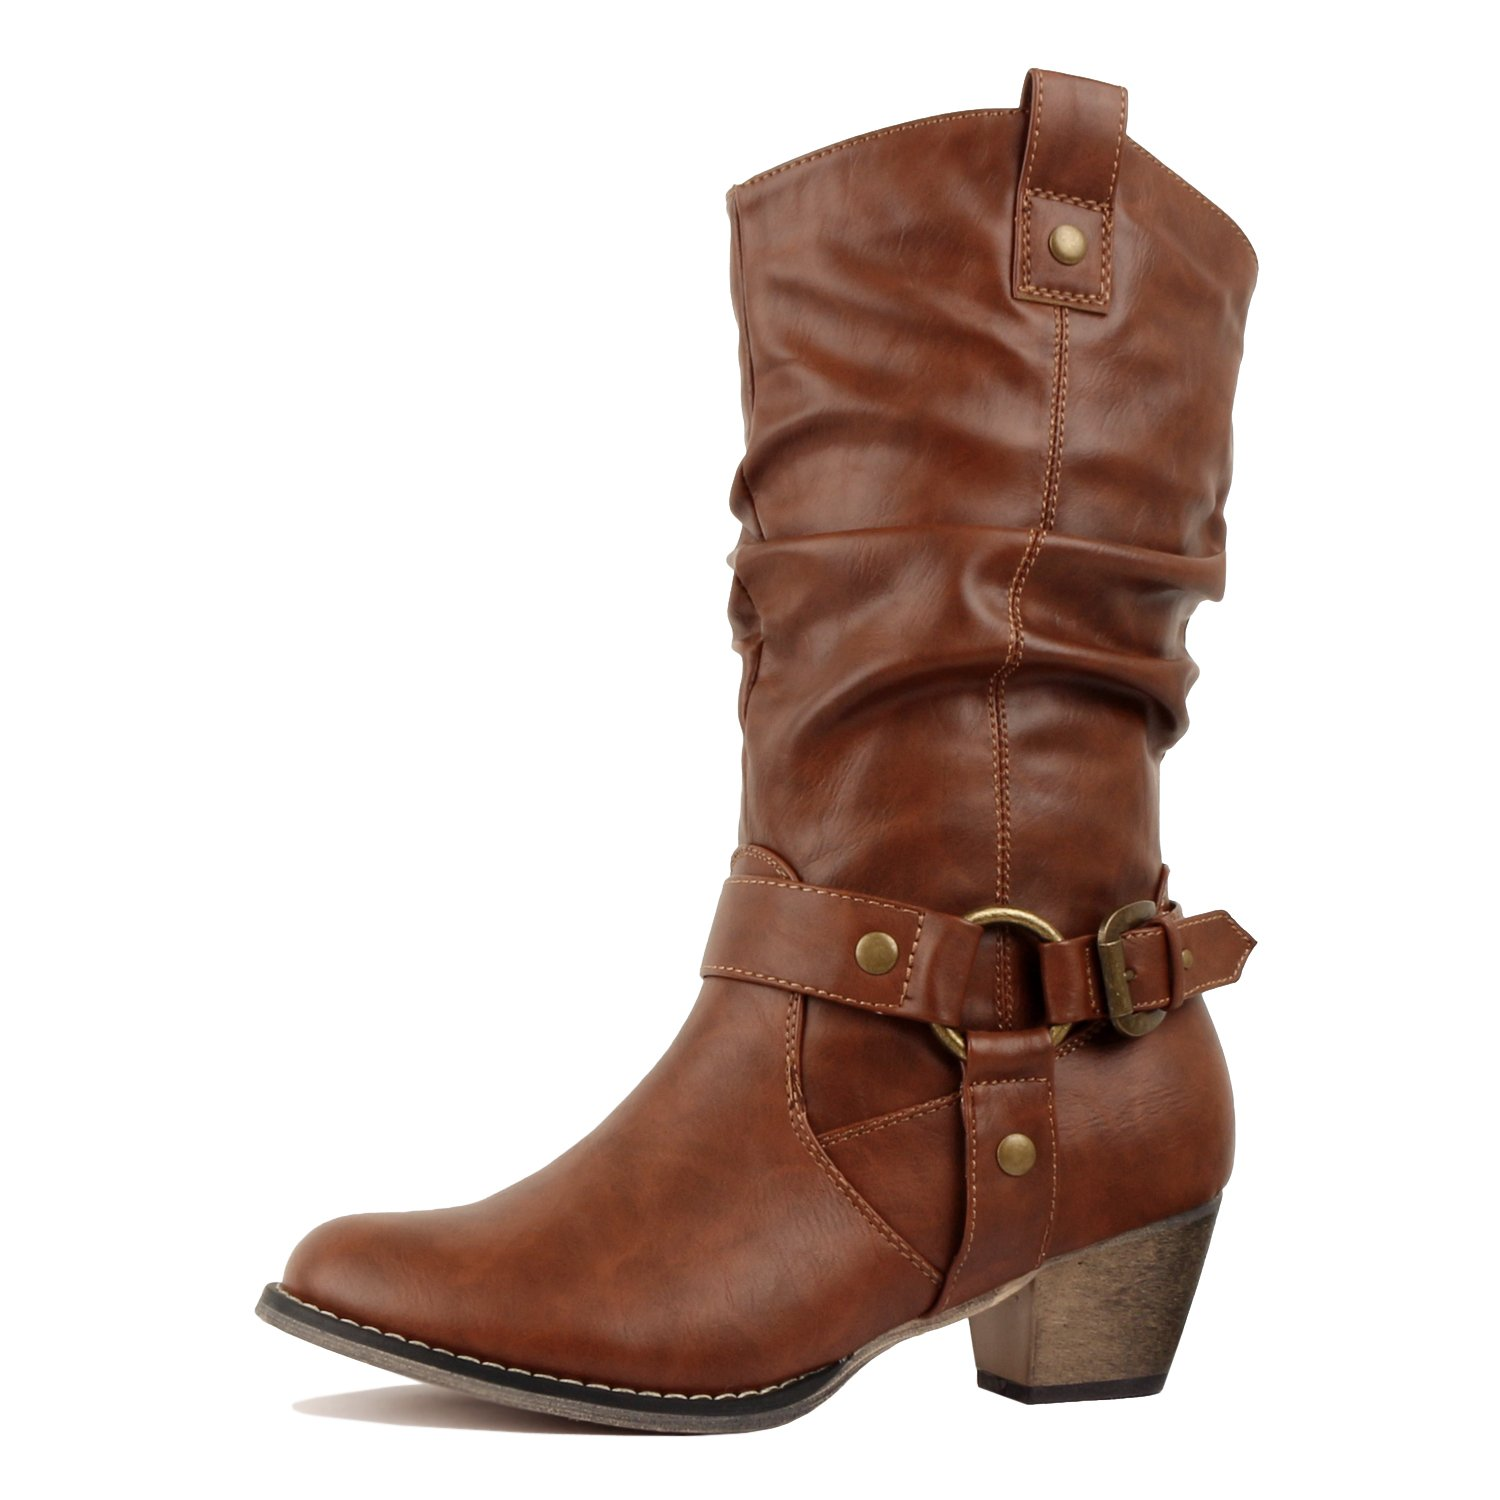 West Blvd - Miami - Cowboy Western Womens Embroidery Stitching Chunky Heel Boots (9 B(M) US, Tan Harness)